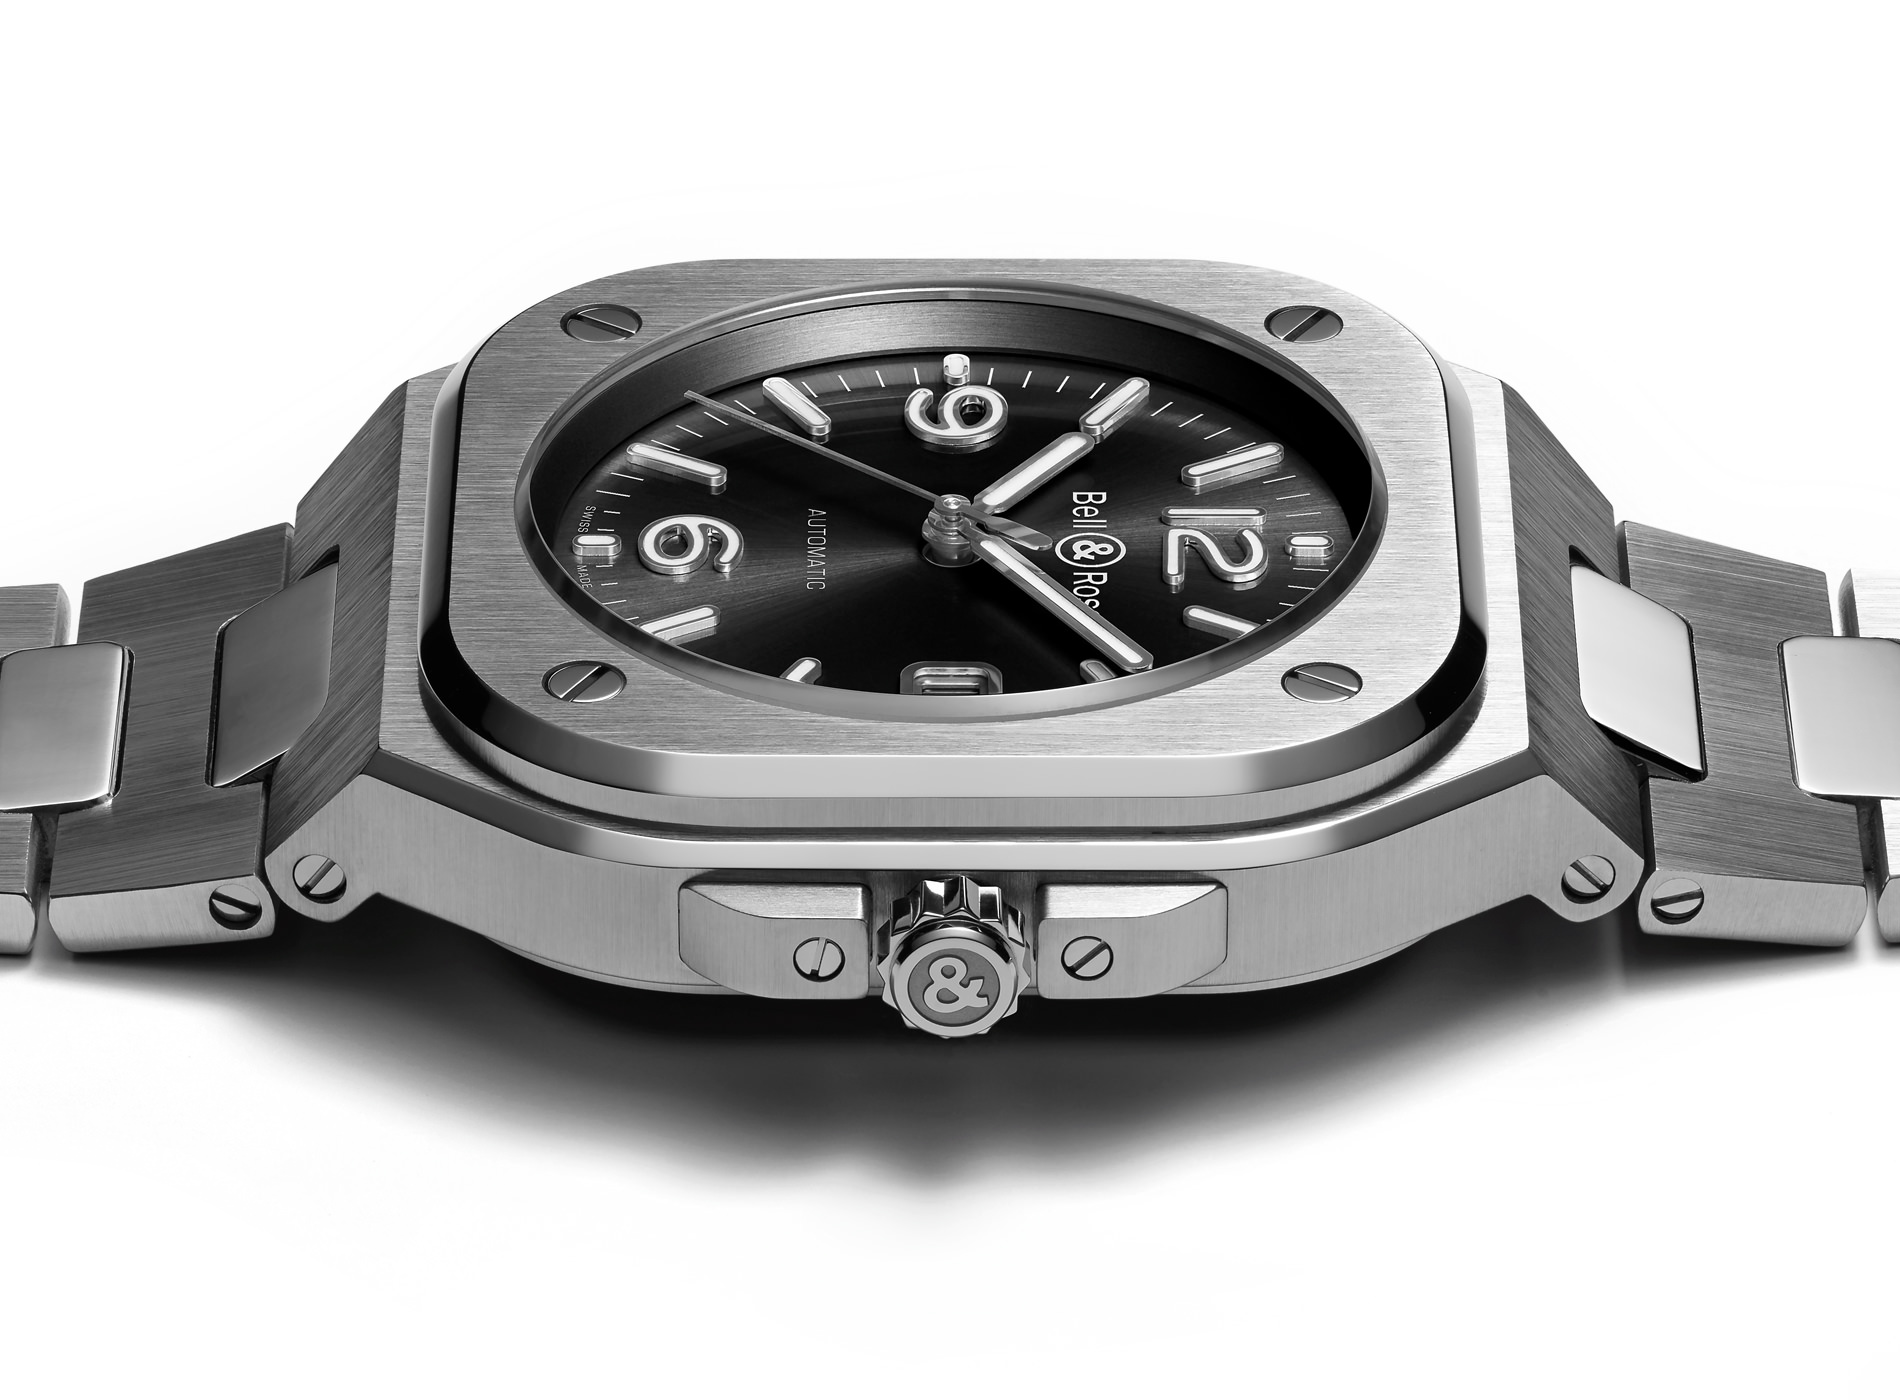 Montre Bell & Ross Nouvelle Collection BR05 Macro Epaisseur